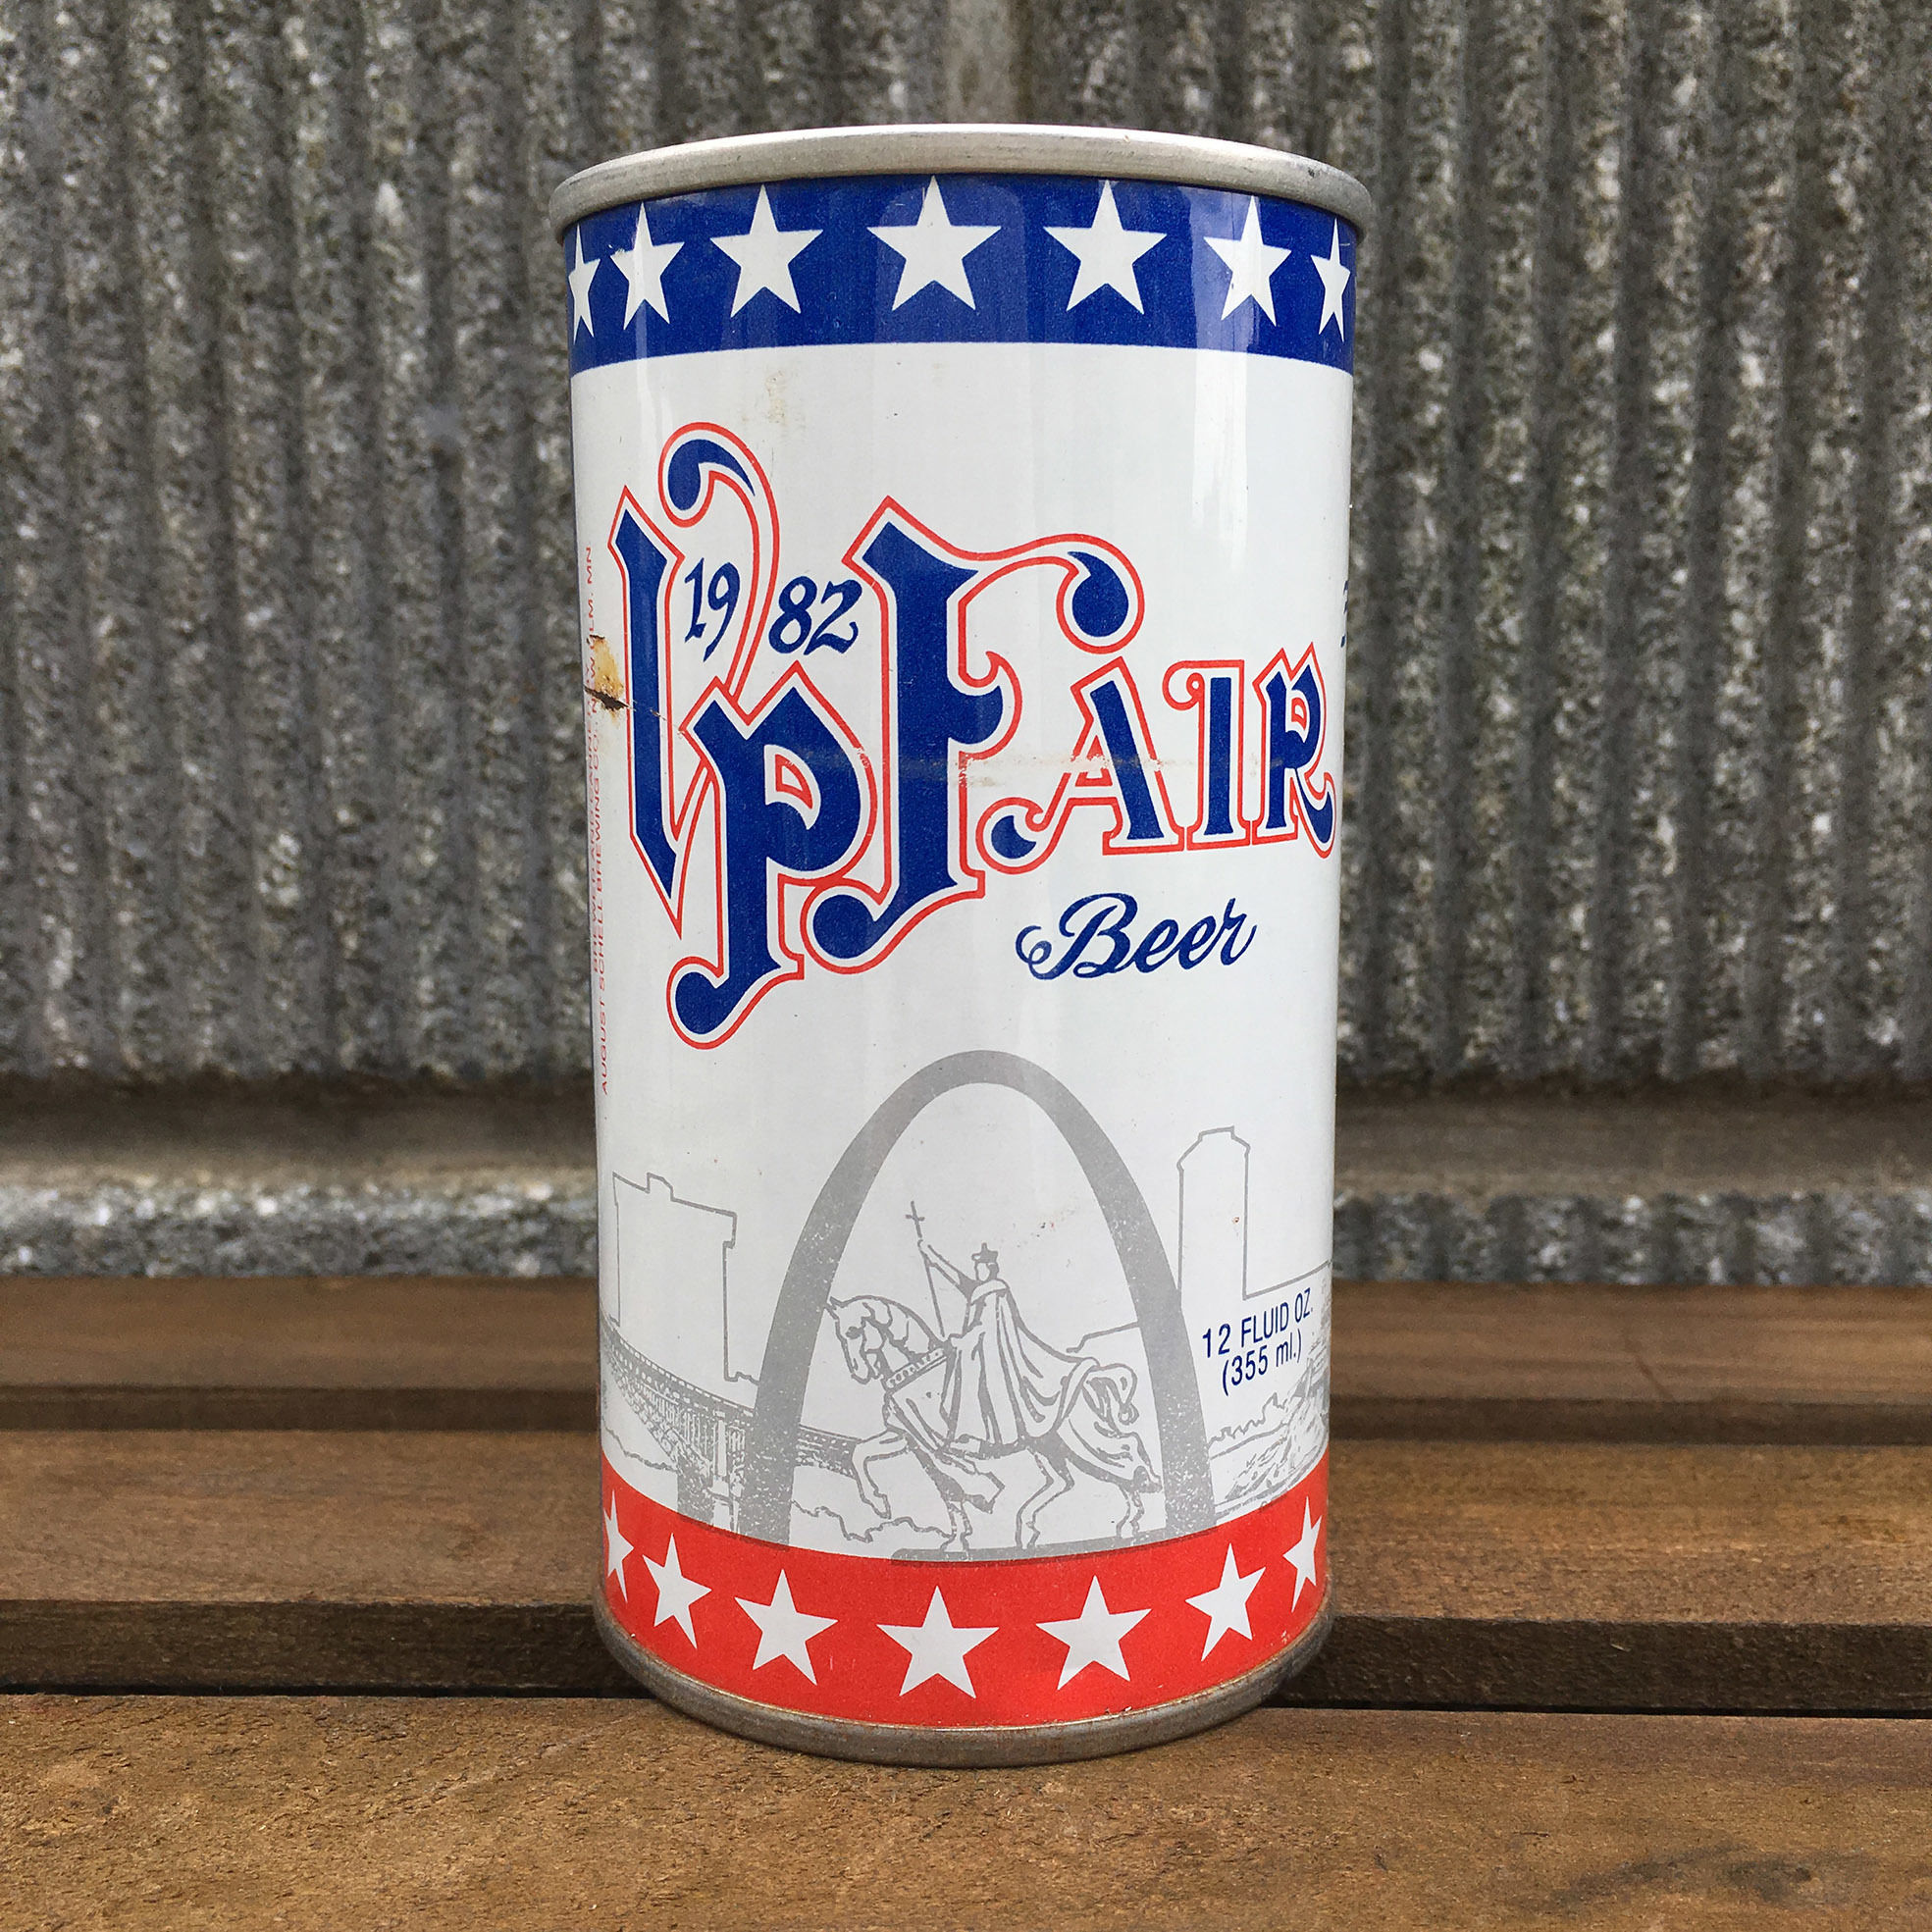 VINTAGE CAN Vp Fair Beer Can/ヴィンテージ缶 VPフェア ビアー缶/161011-8